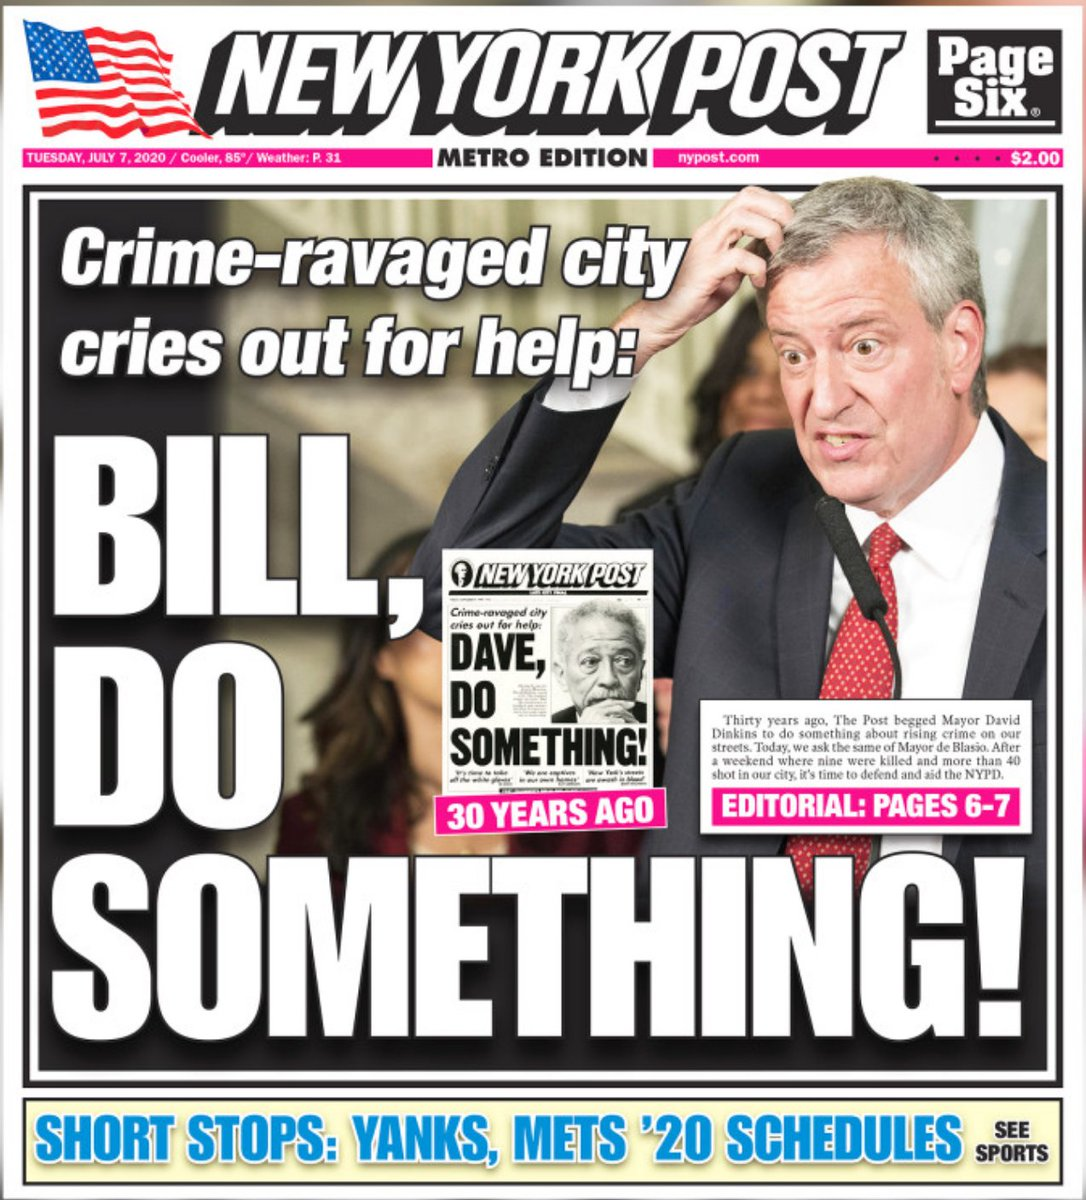 Tuesday's @nypost front page is a throwback https://t.co/F0fIVCPY6K